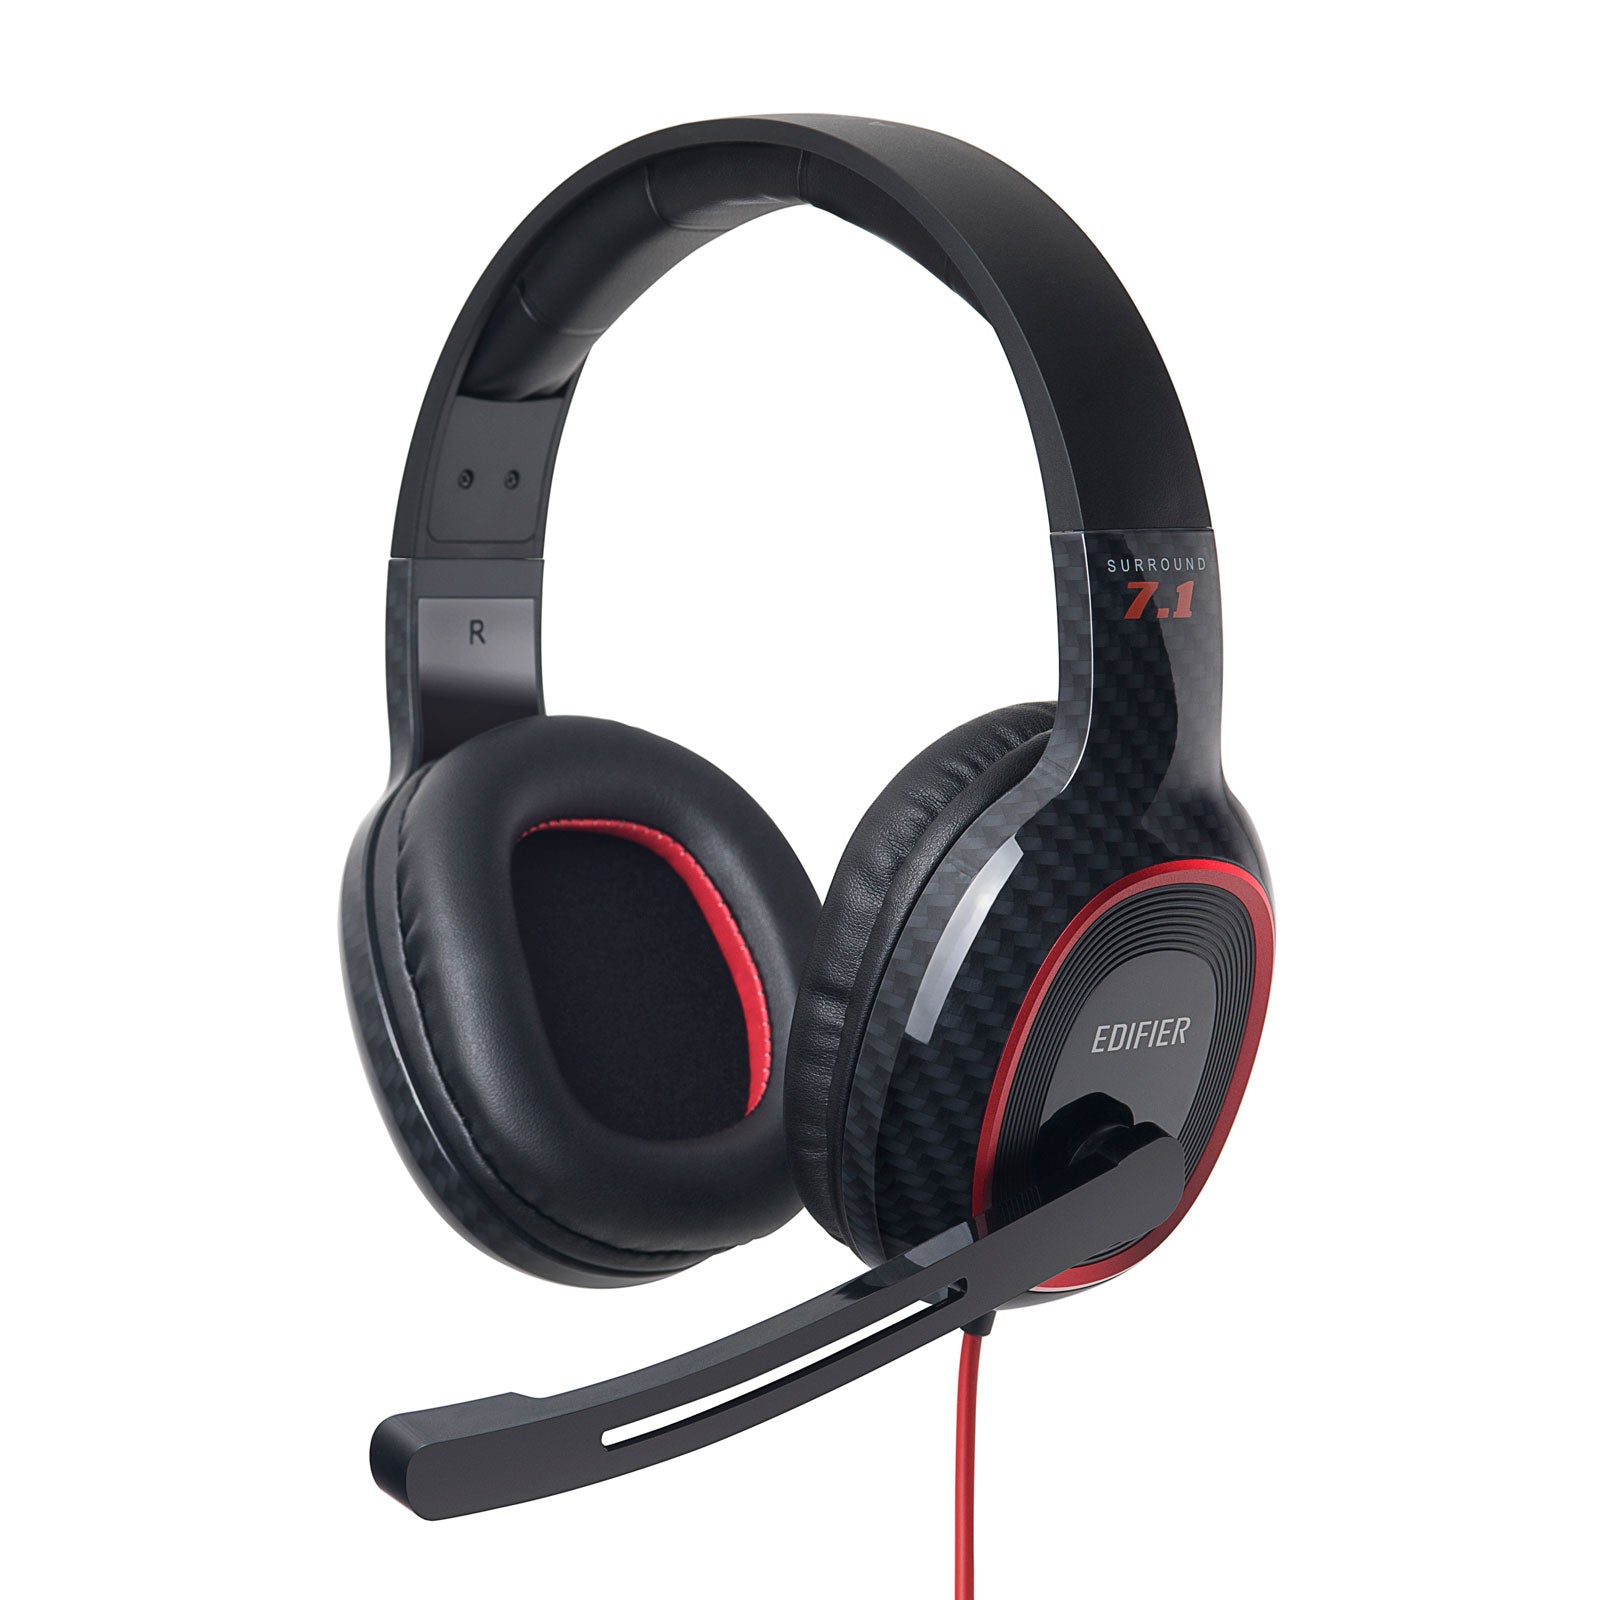 Edifier G20 Professional Gaming Headset Boom Microphone Virtual Surround Sound